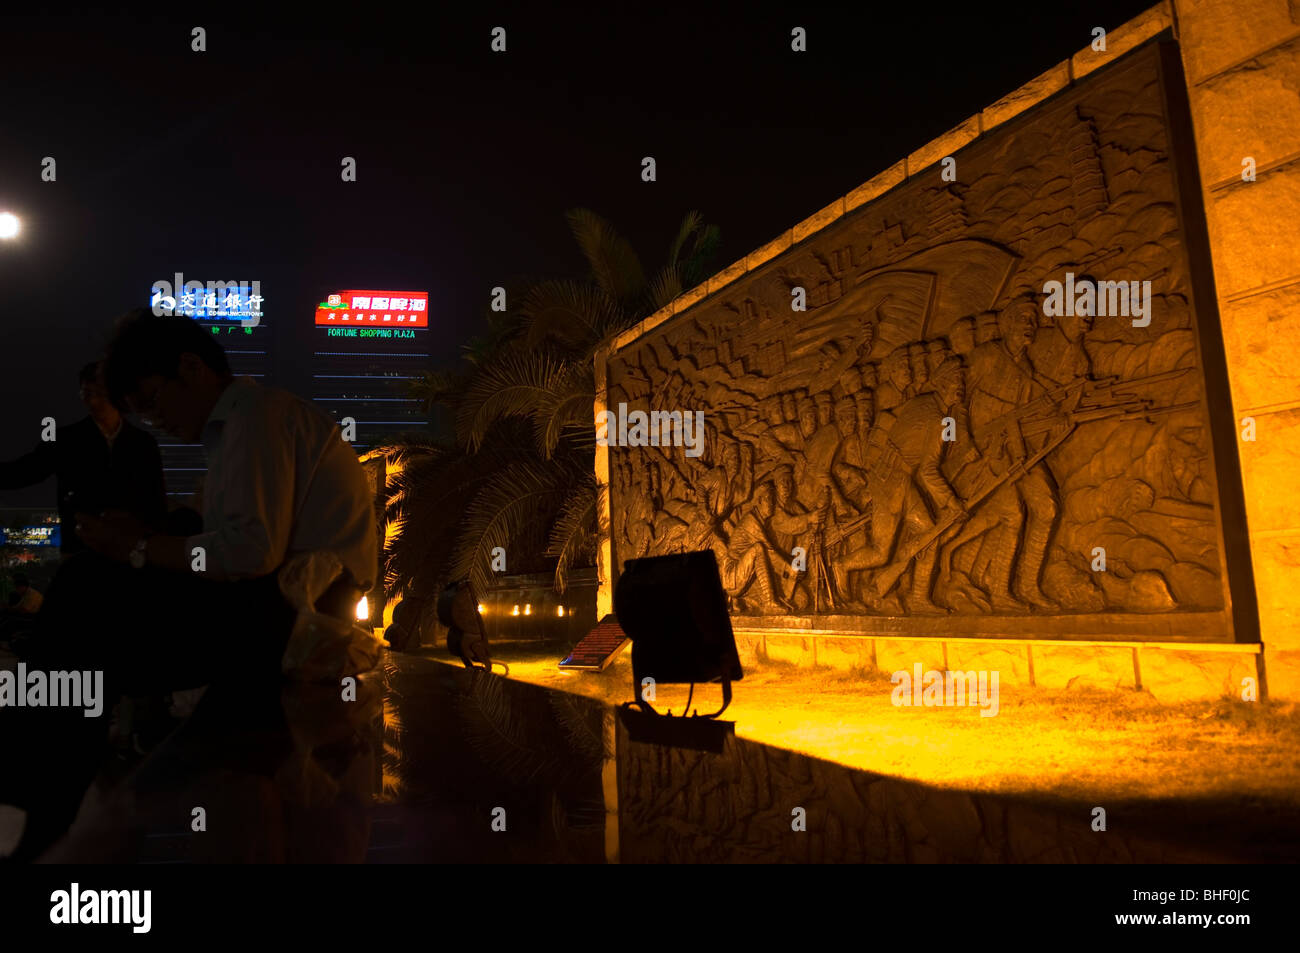 People's Square by night. Monument to the Martyrs. Nanchang. Jiangxi province. China. - Stock Image